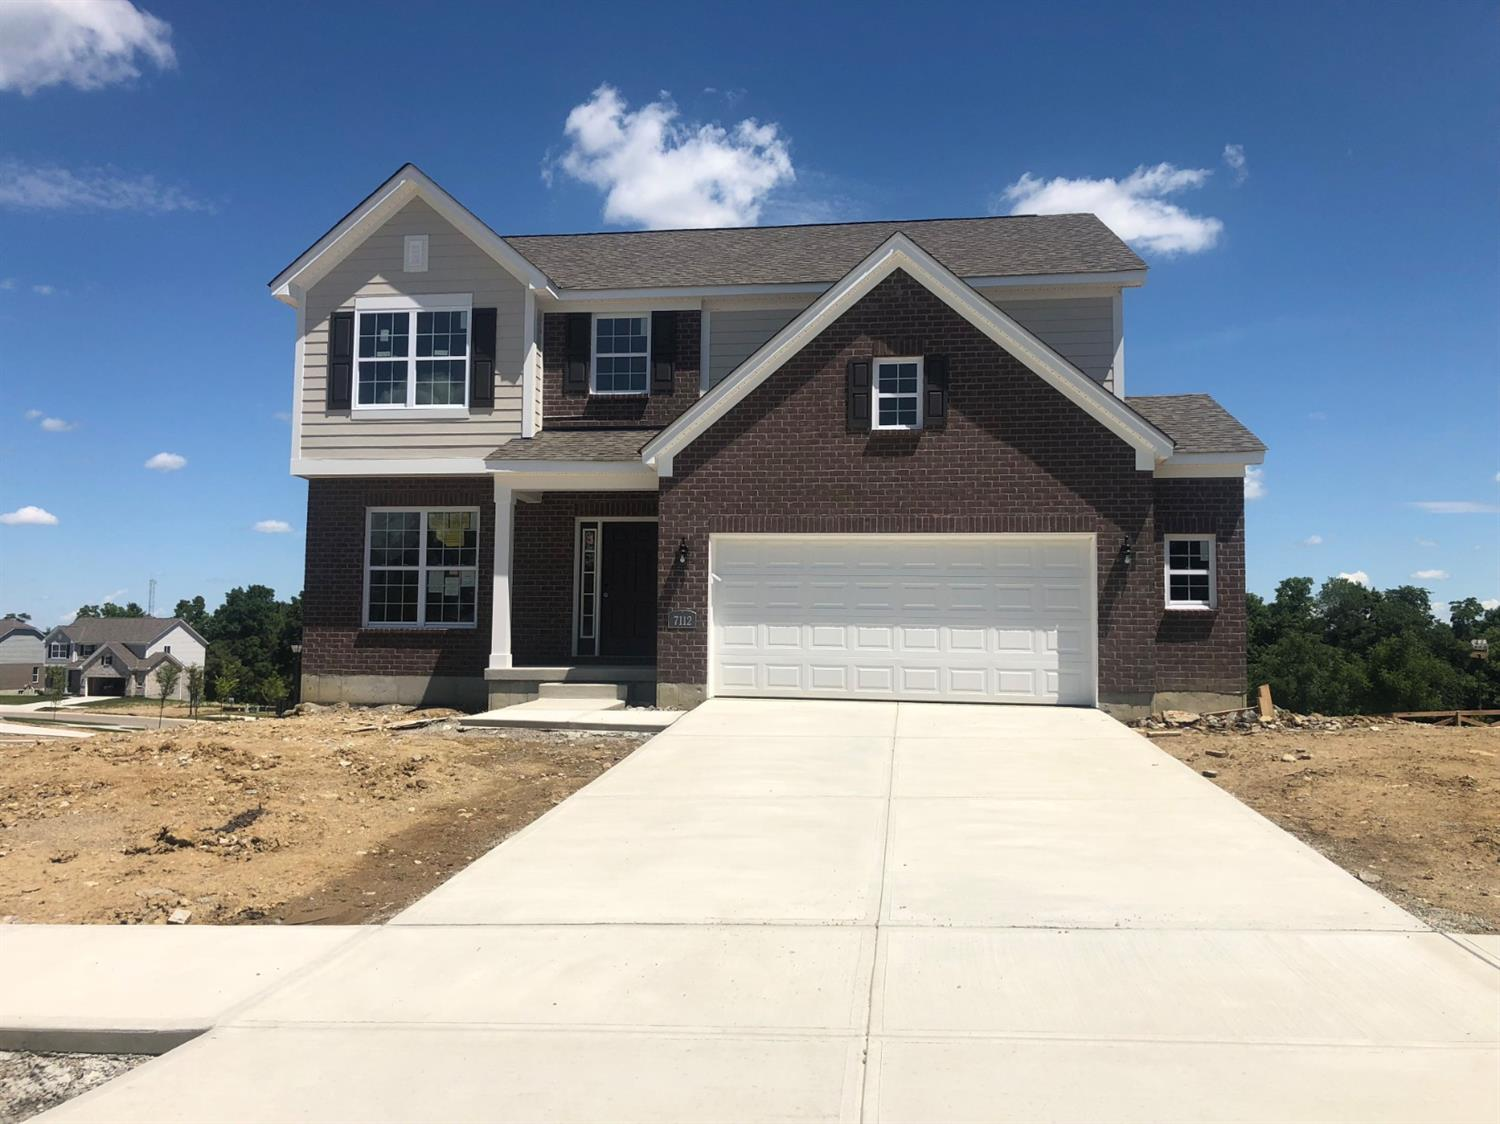 Property for sale at 7112 Dudley View Drive Unit: 18, Liberty Twp,  Ohio 45011